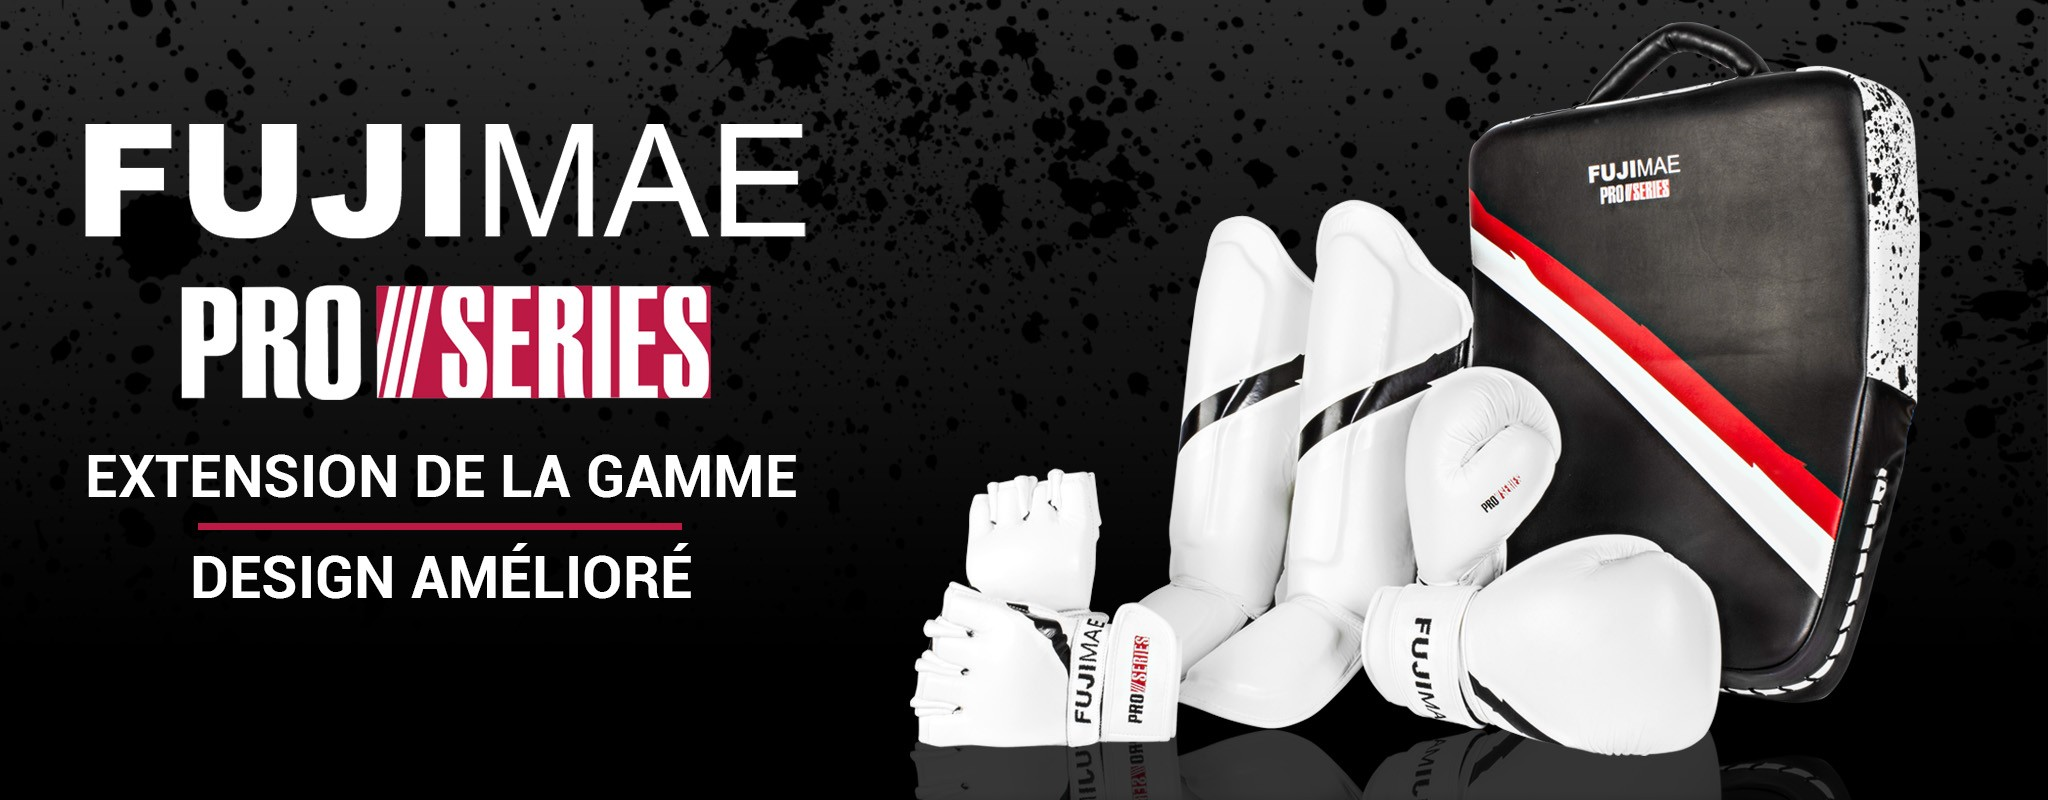 Gamme ProSeries